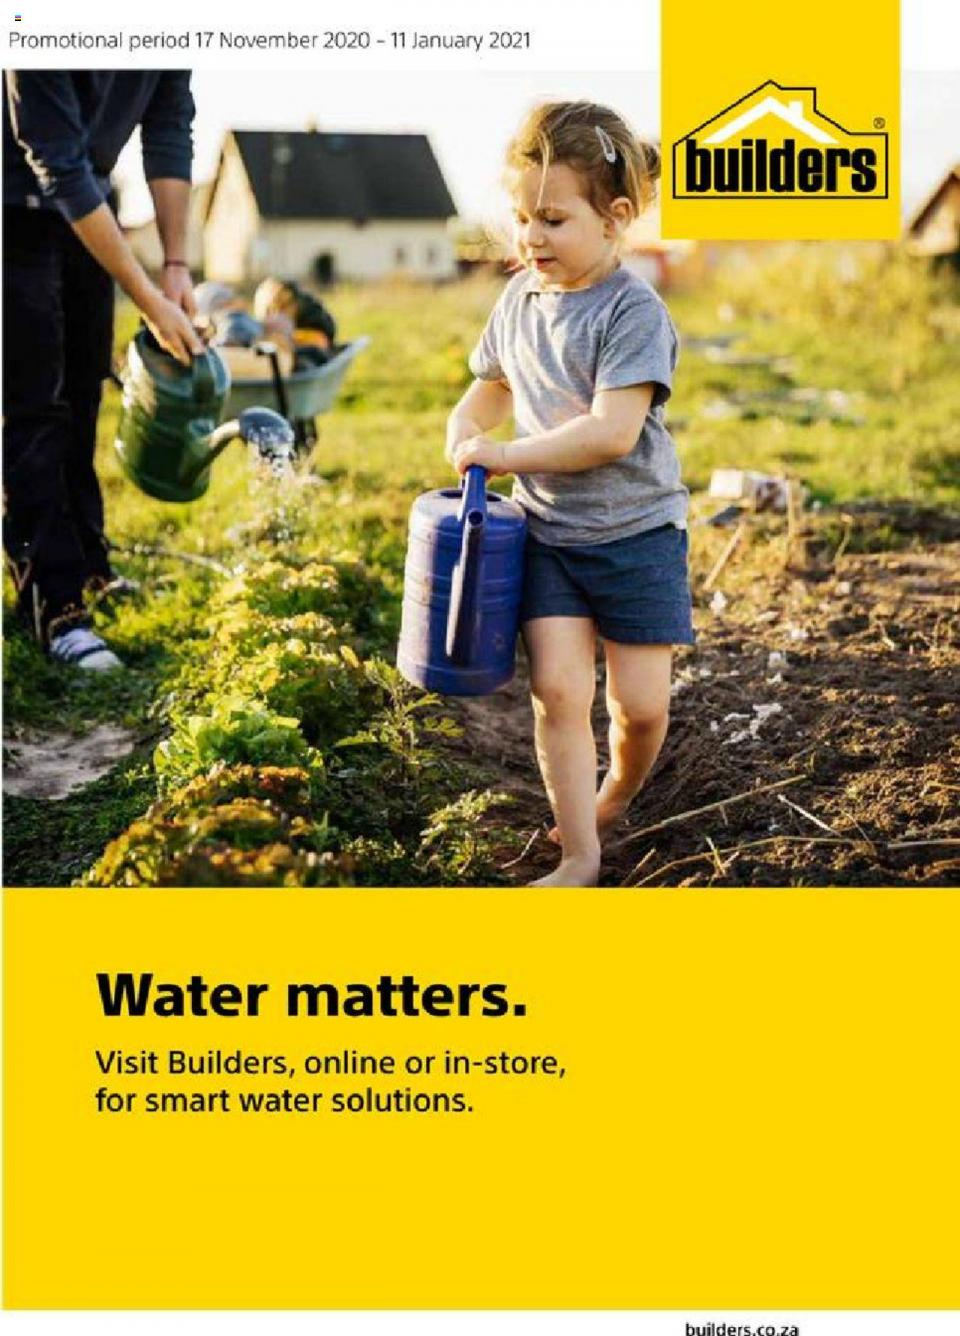 builders warehouse specials water matters 17 november 2020